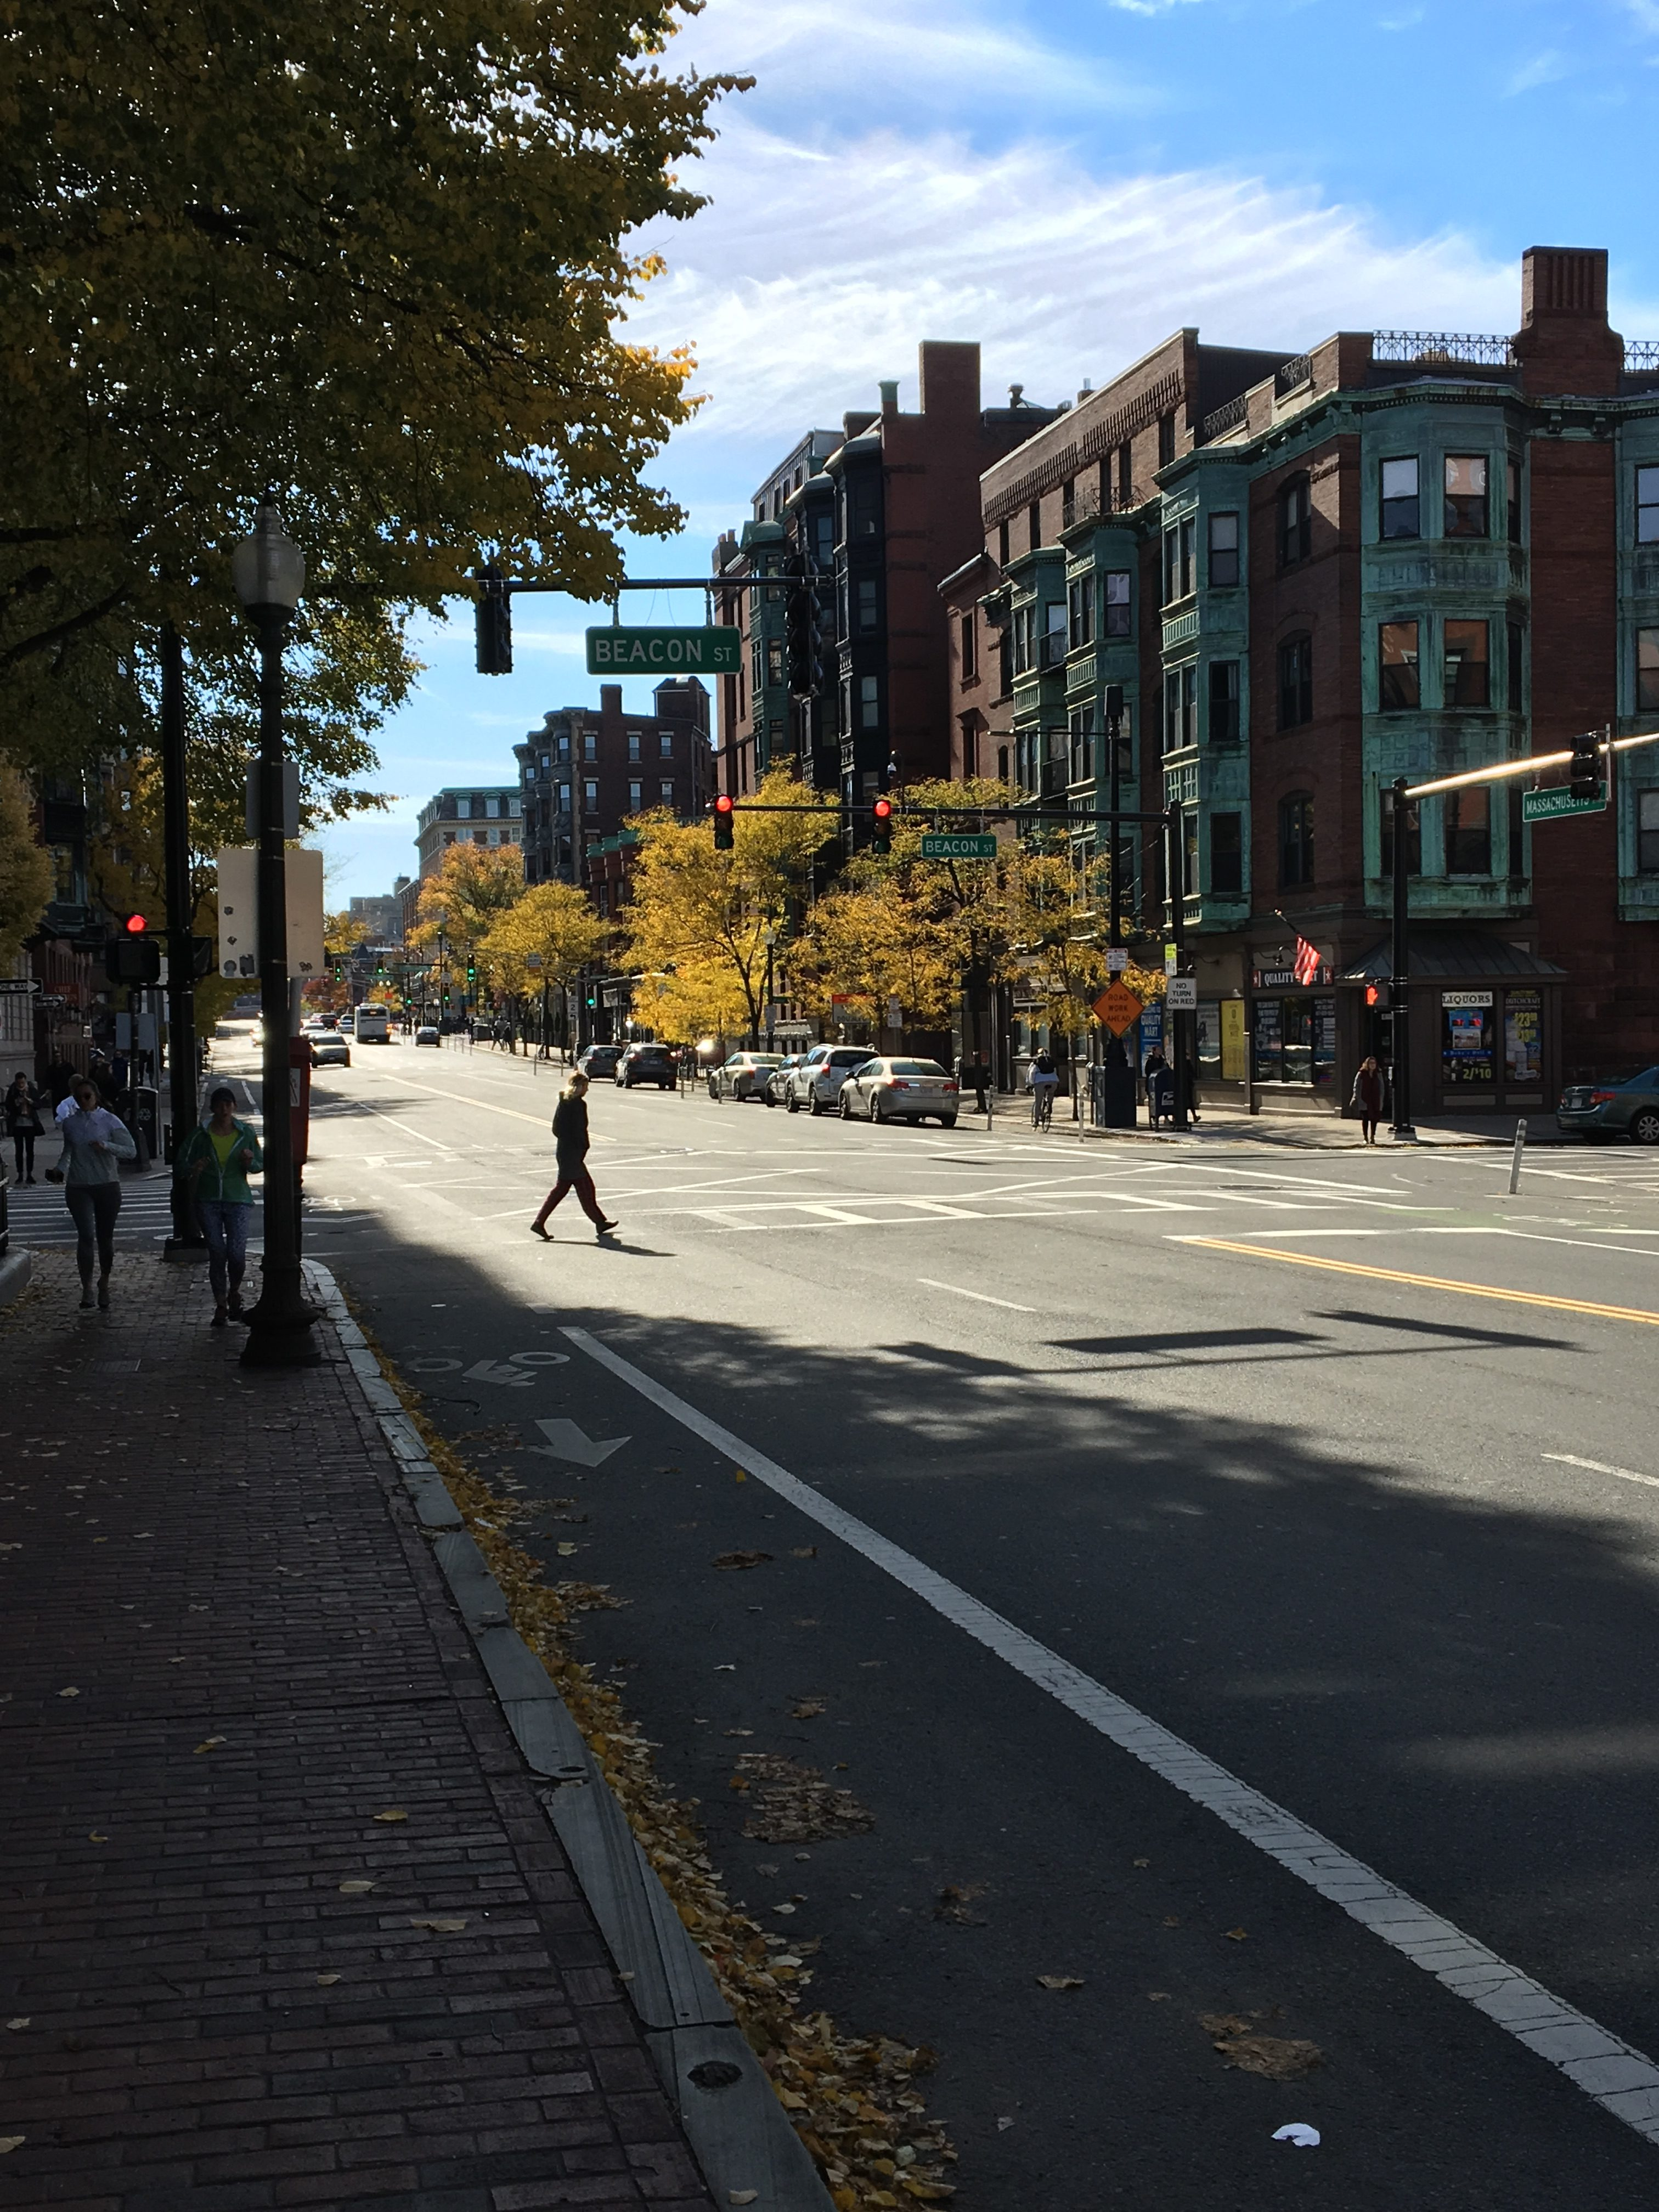 A road in Boston; red brick buildings are visible on the other side. The trees cast a shadow over the foreground but sunlight illuminates a man walking across the street in the middleground.